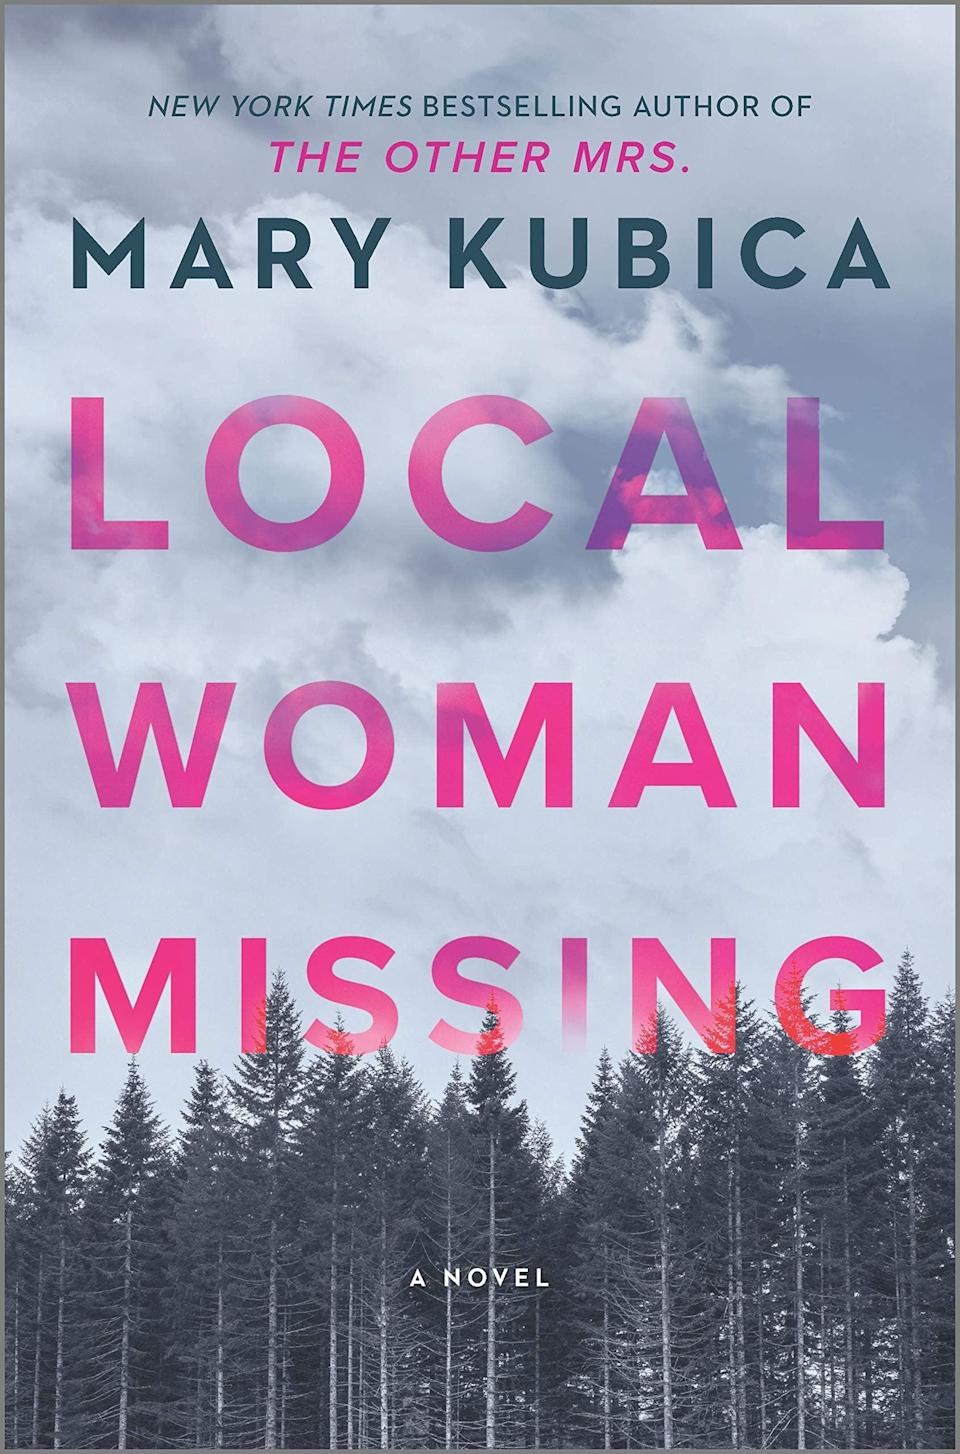 <p>Bestselling author Mary Kubica's latest thriller, <span><strong>Local Woman Missing</strong></span>, will chill you to the bone. Two women and a little girl go missing just days apart in a small community, but the case quickly goes cold. Then, 11 years later, Delilah, who was just 6 when she disappeared, returns with a shocking story about where she has been all these years. </p> <p><em>Out May 18</em></p>